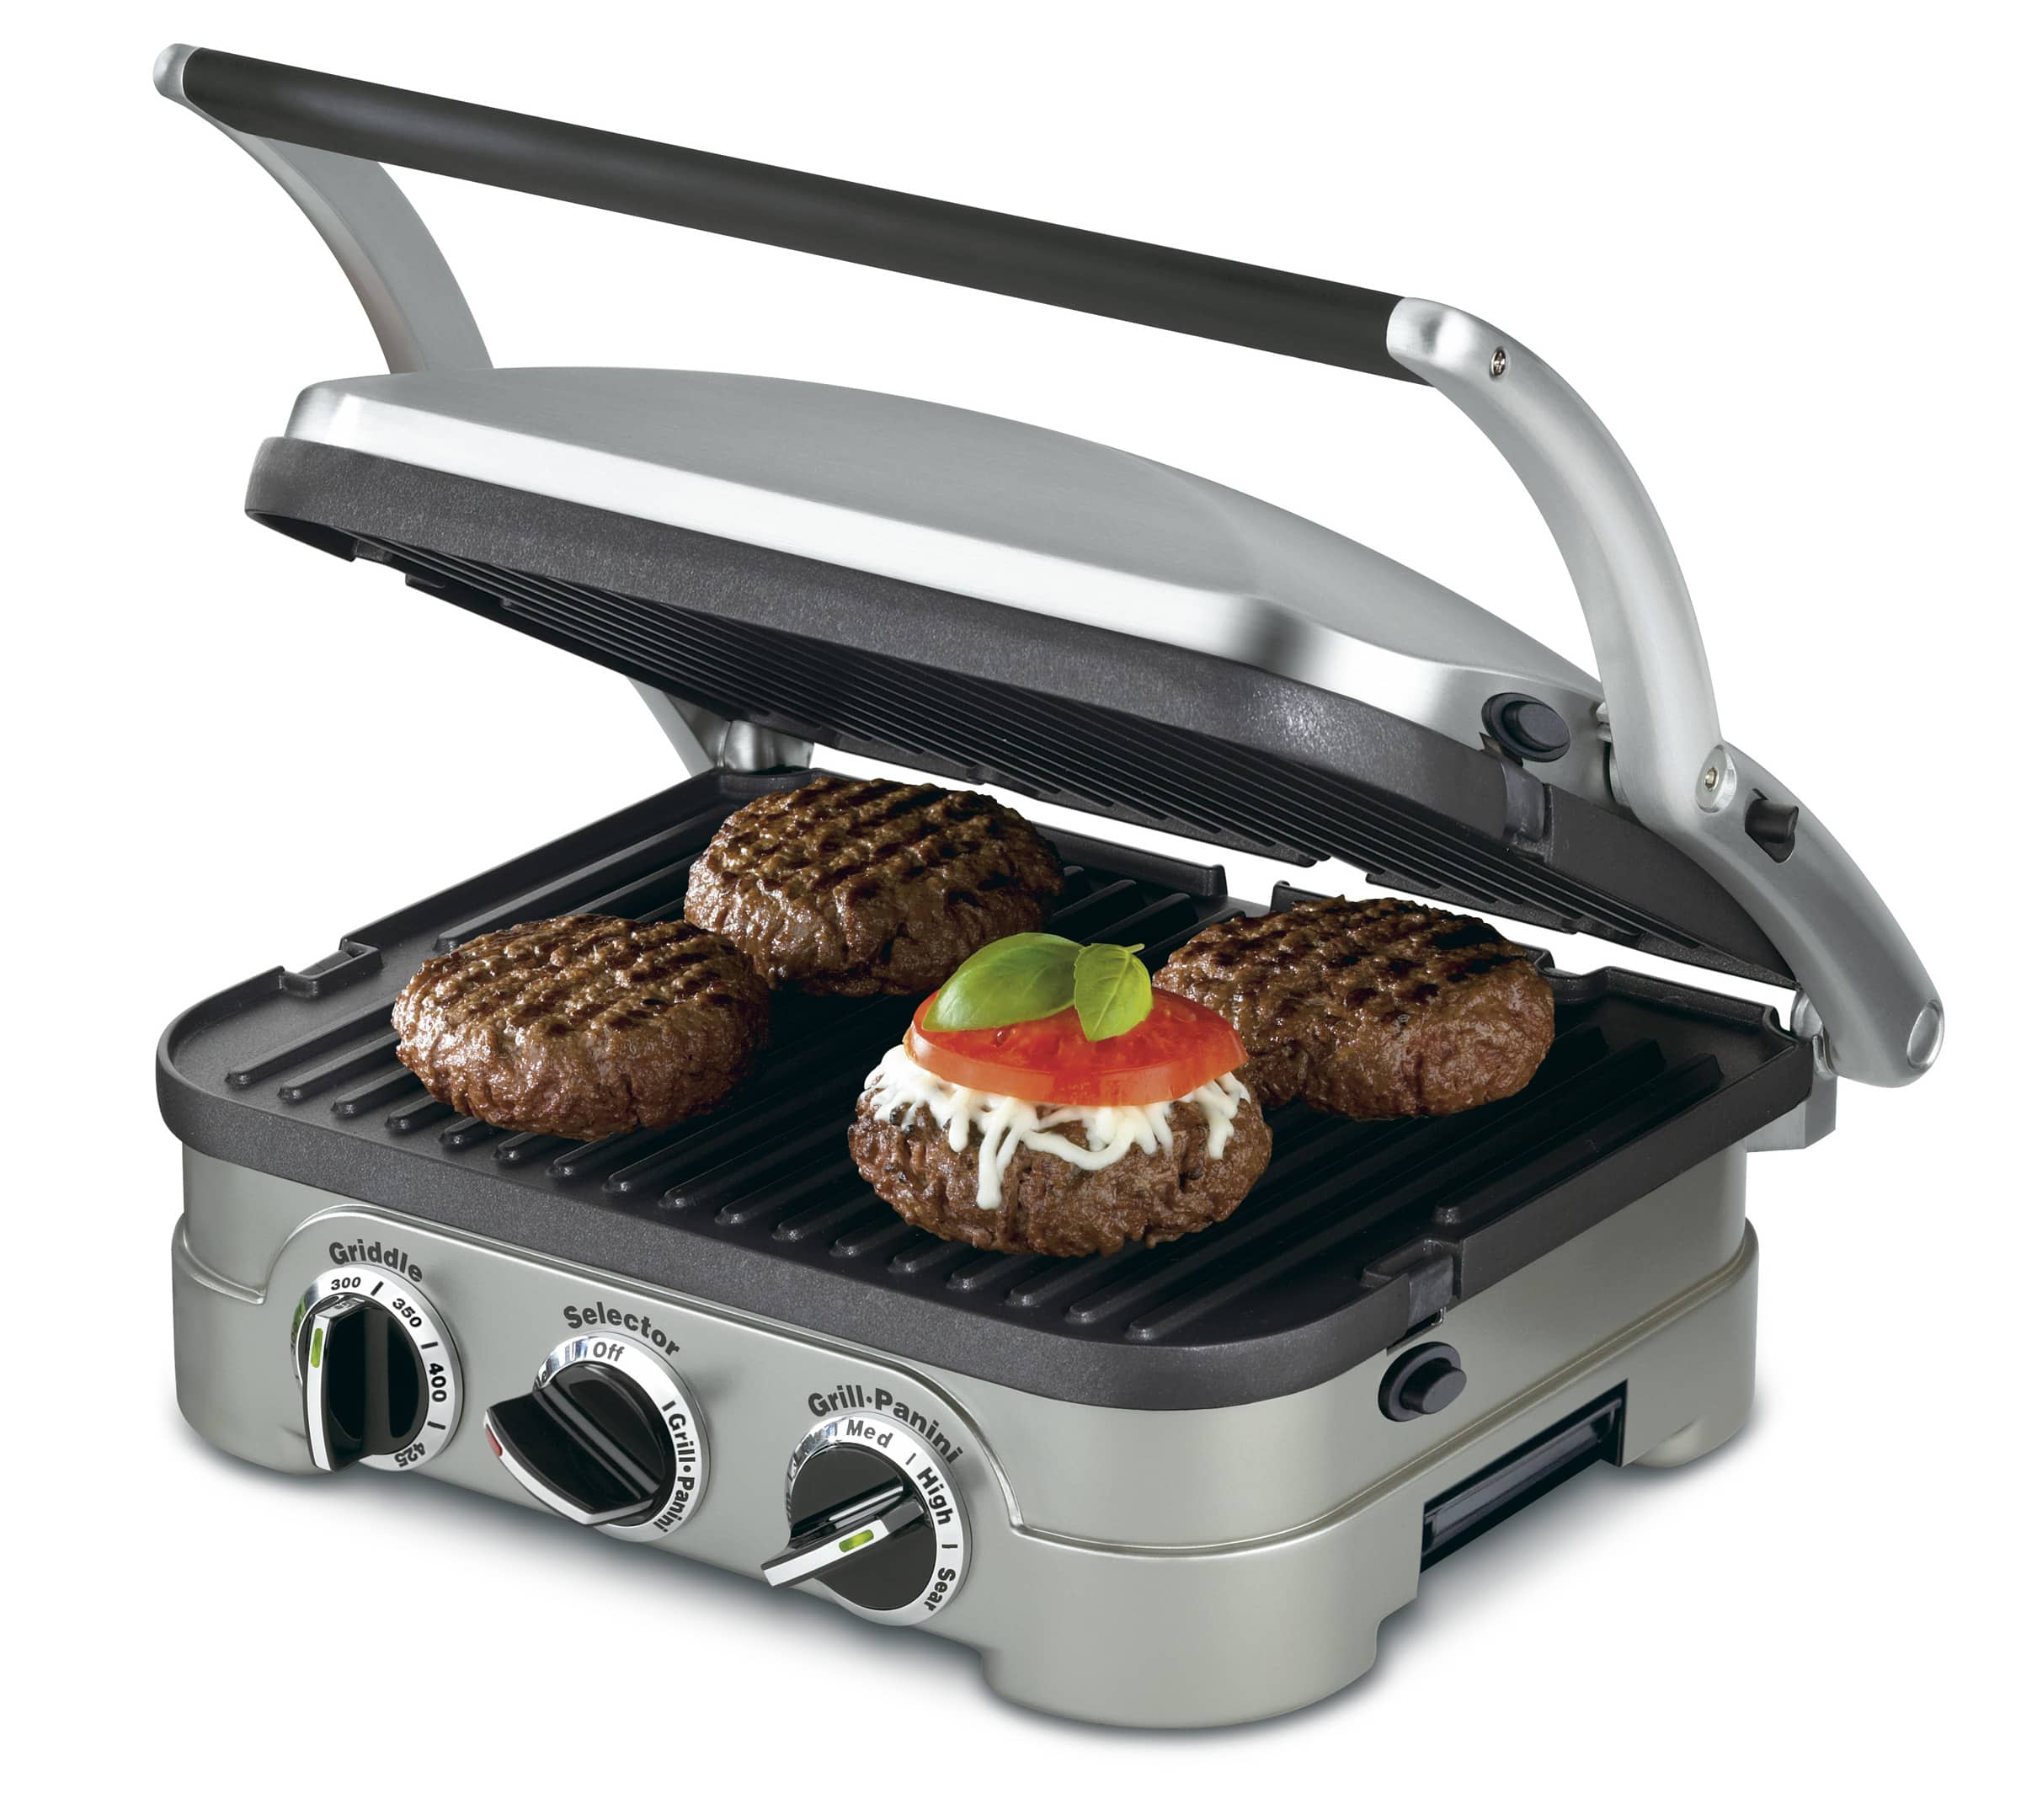 Cuisinart Stainless Steel 5-in-1 Multifunctional Grill $49.99 - Walmart / Amazon +Free Shipping